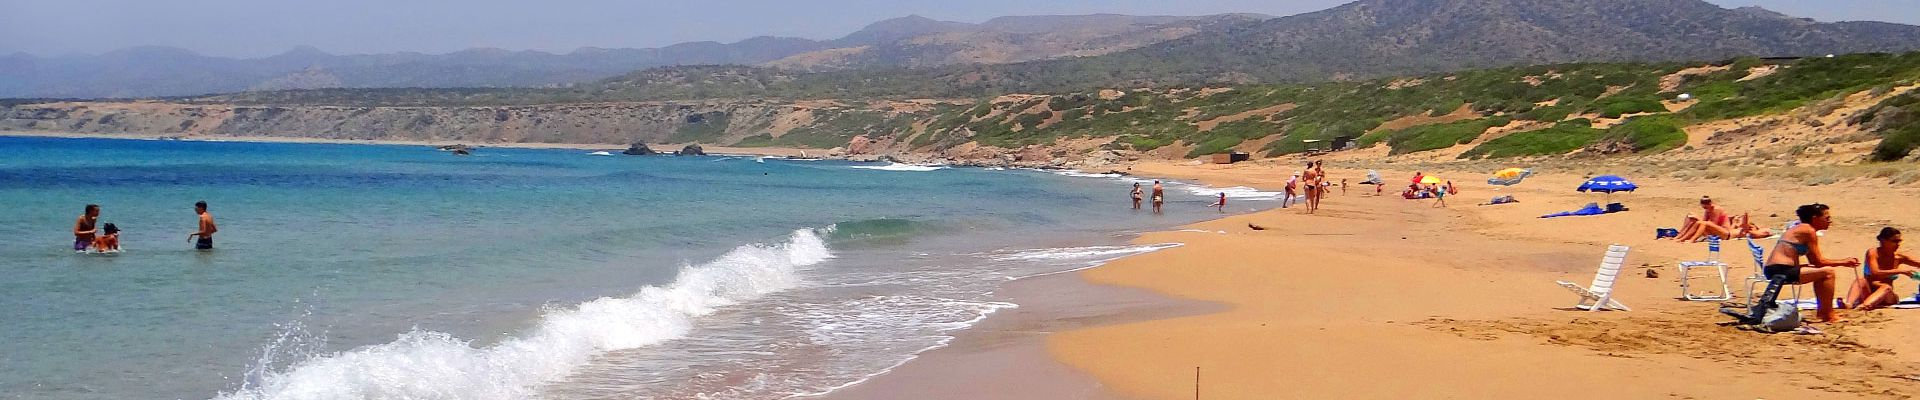 PLAGES PAFOS